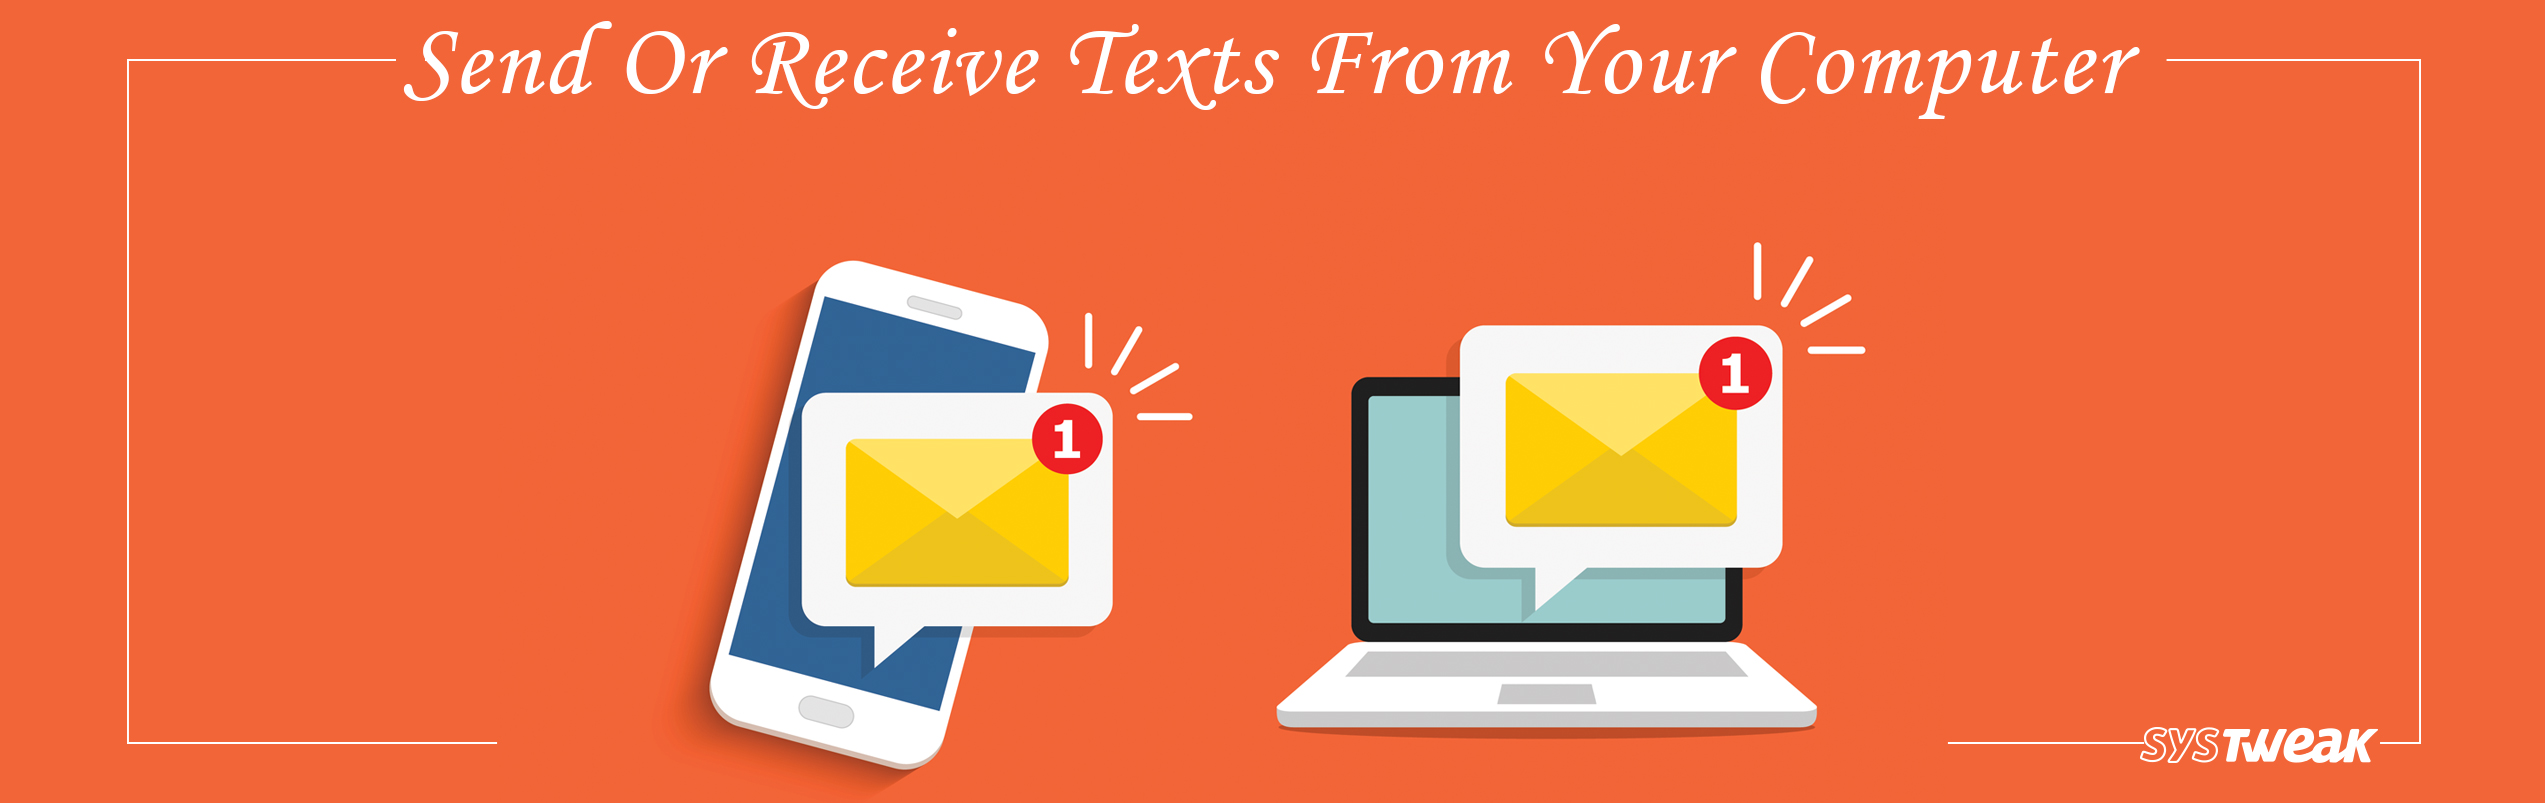 How to Send Or Receive Texts From Your Computer